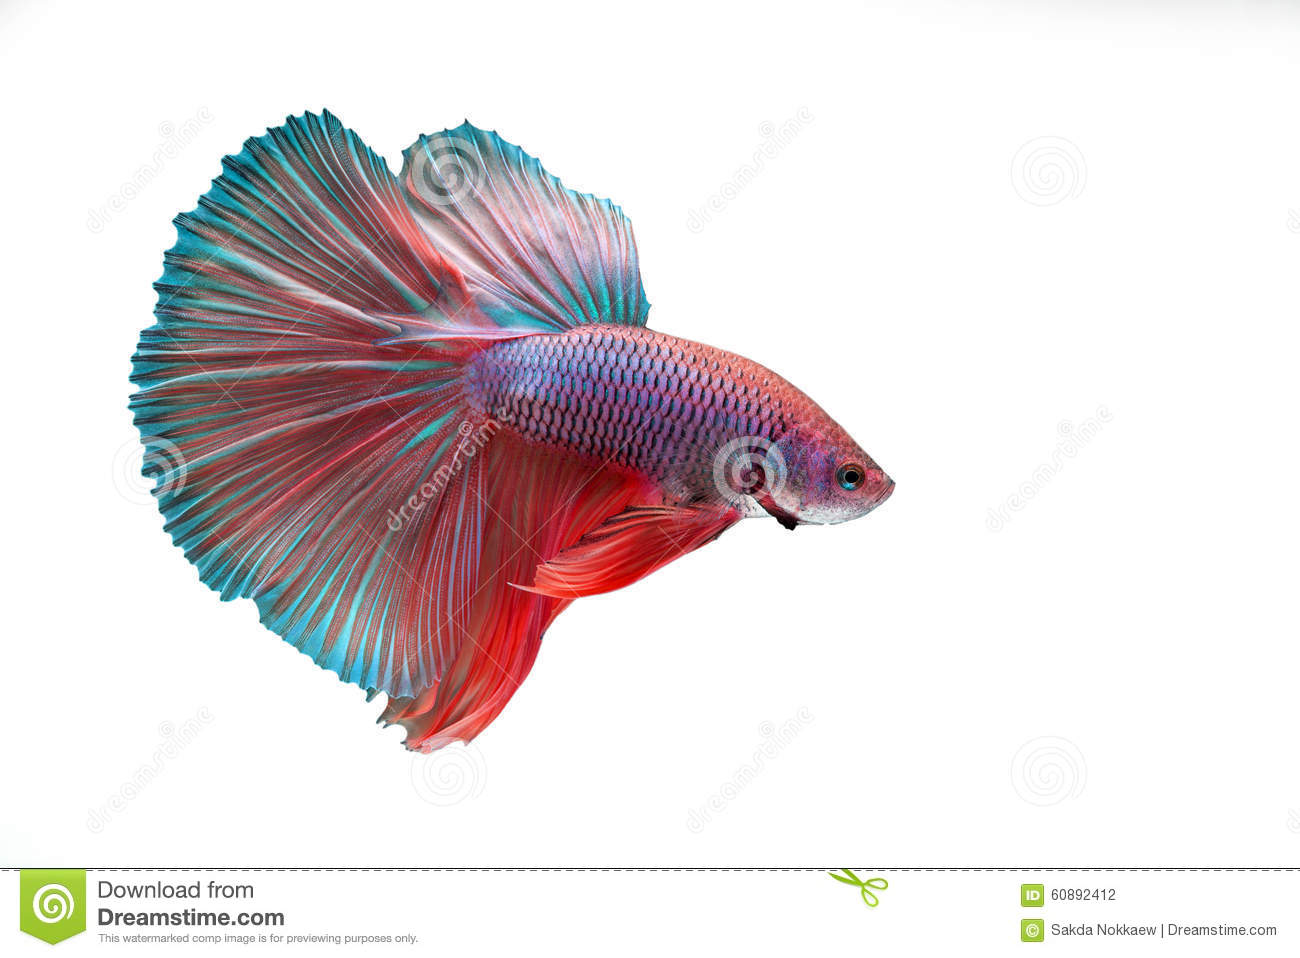 Betta fish stock photo. Image of color, tropical, betta - 60892412